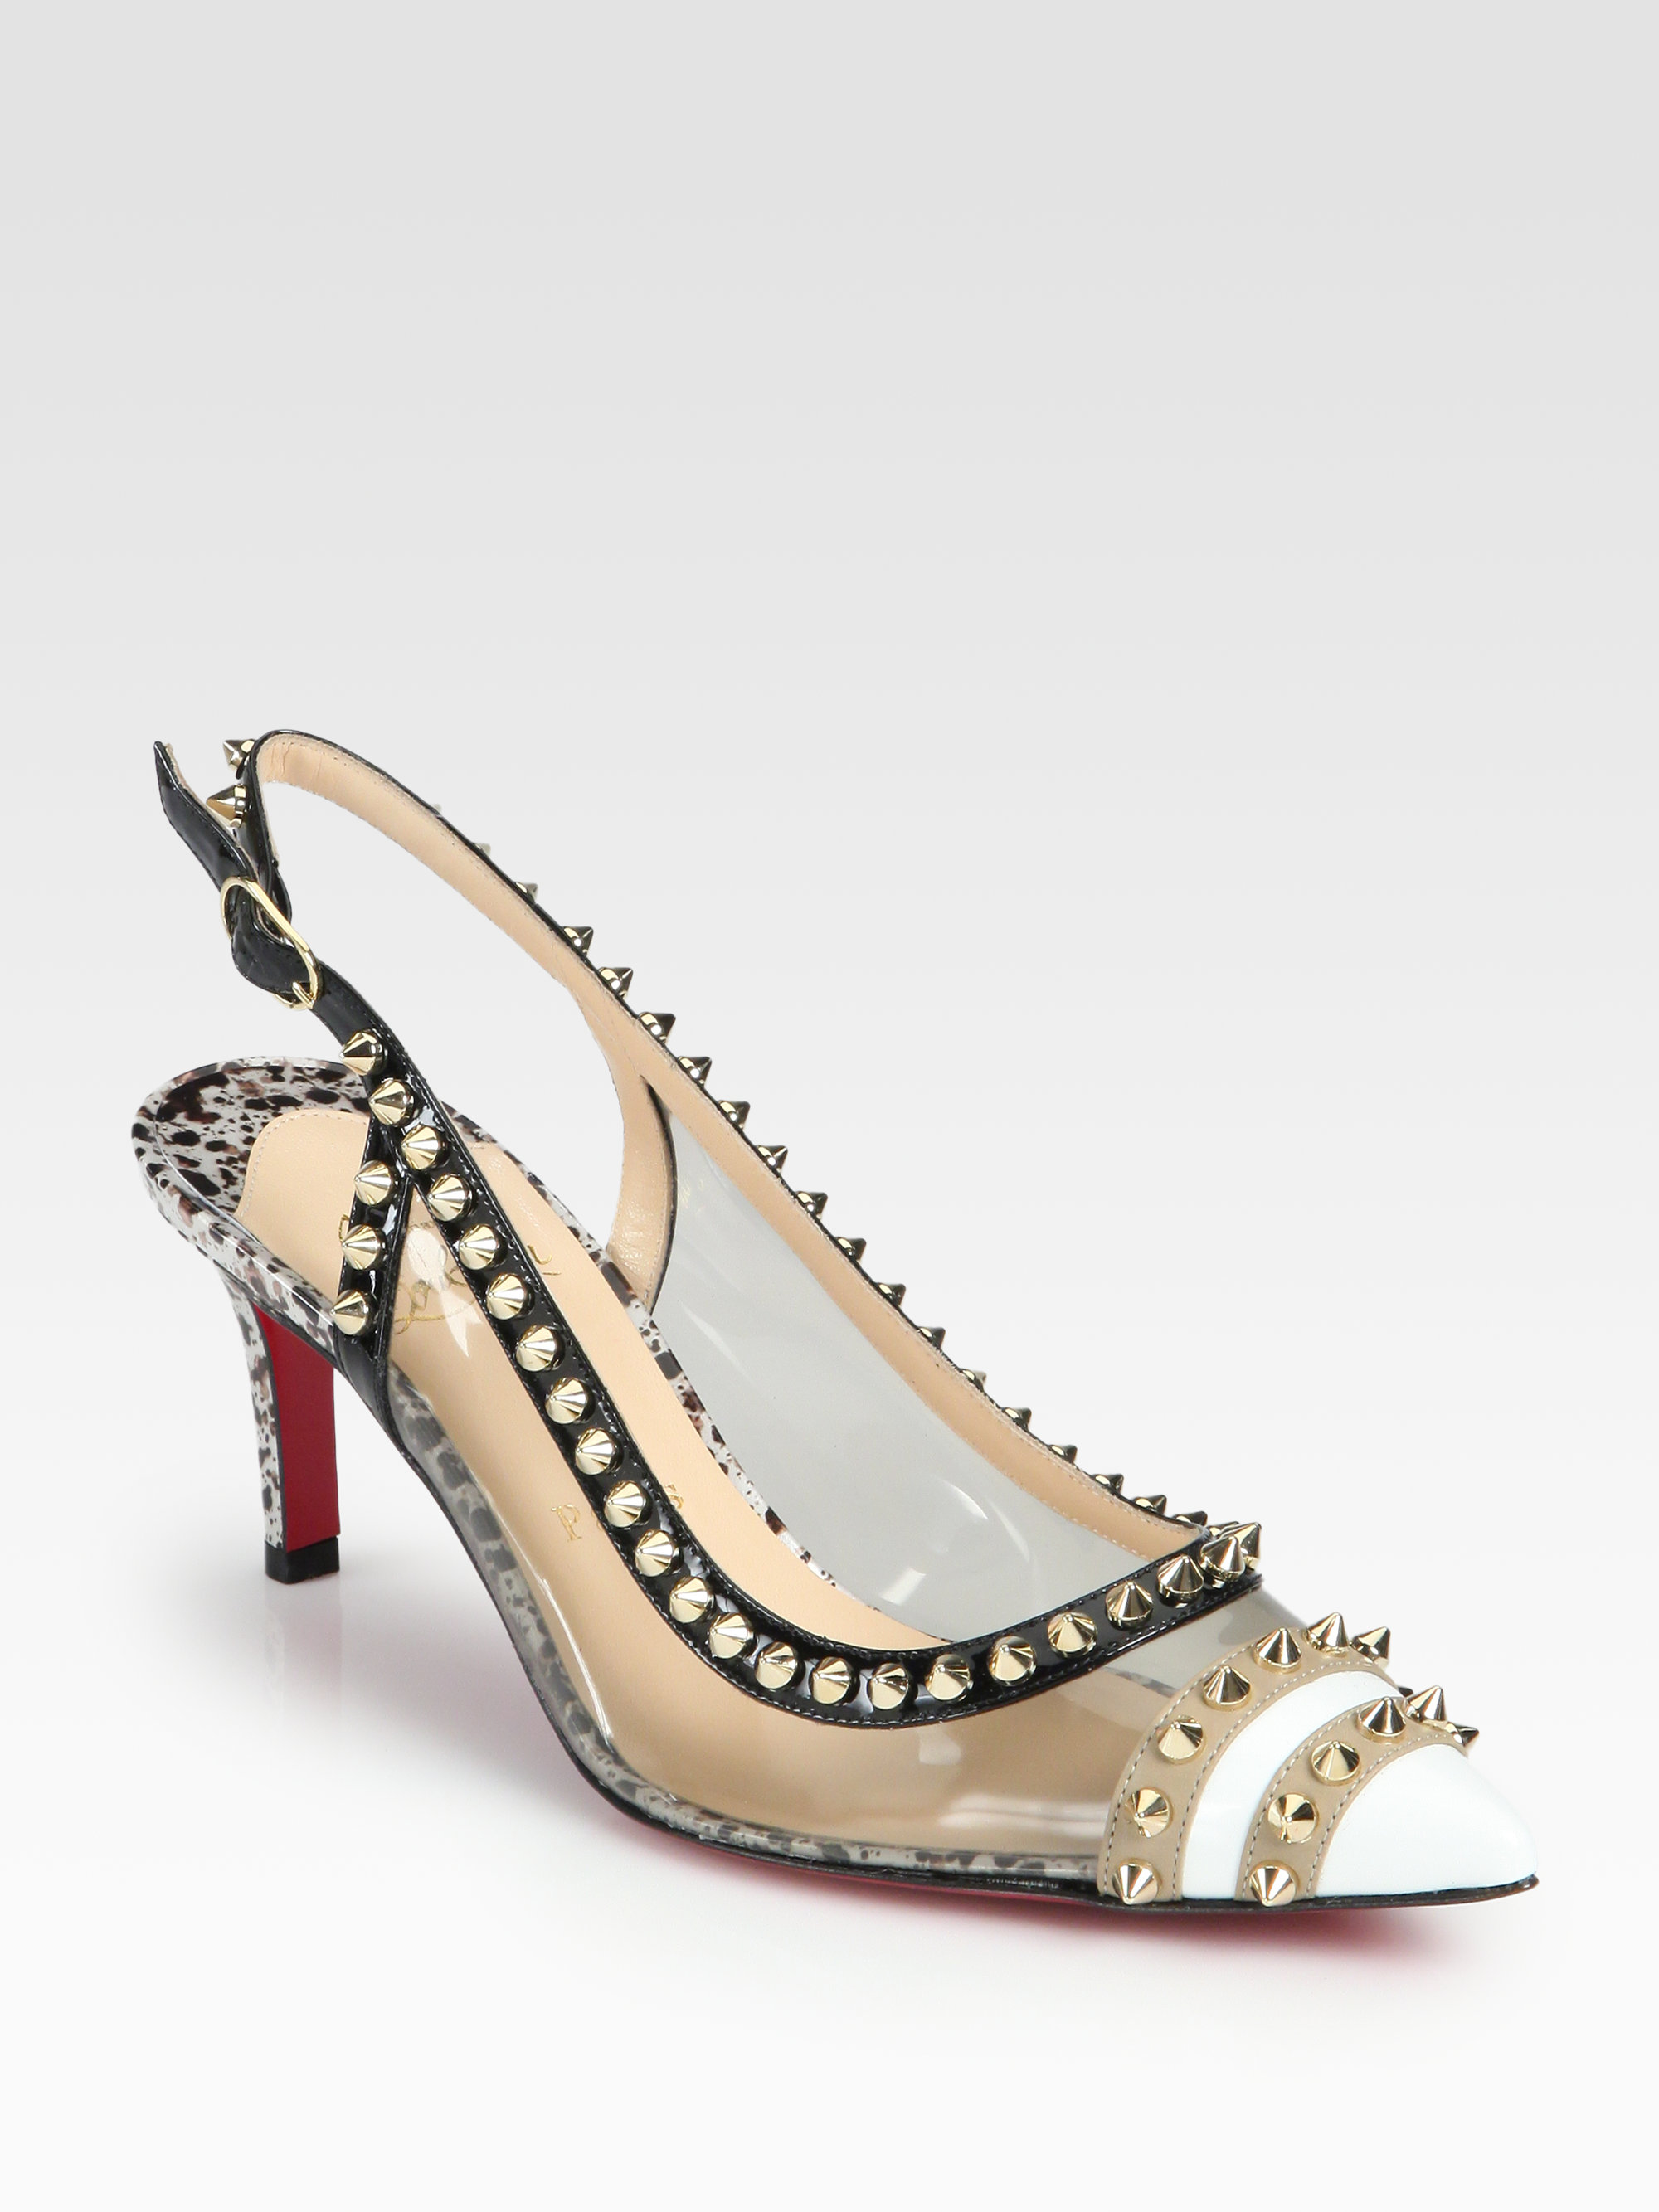 christian louboutin patent leather slingback pumps - Bbridges